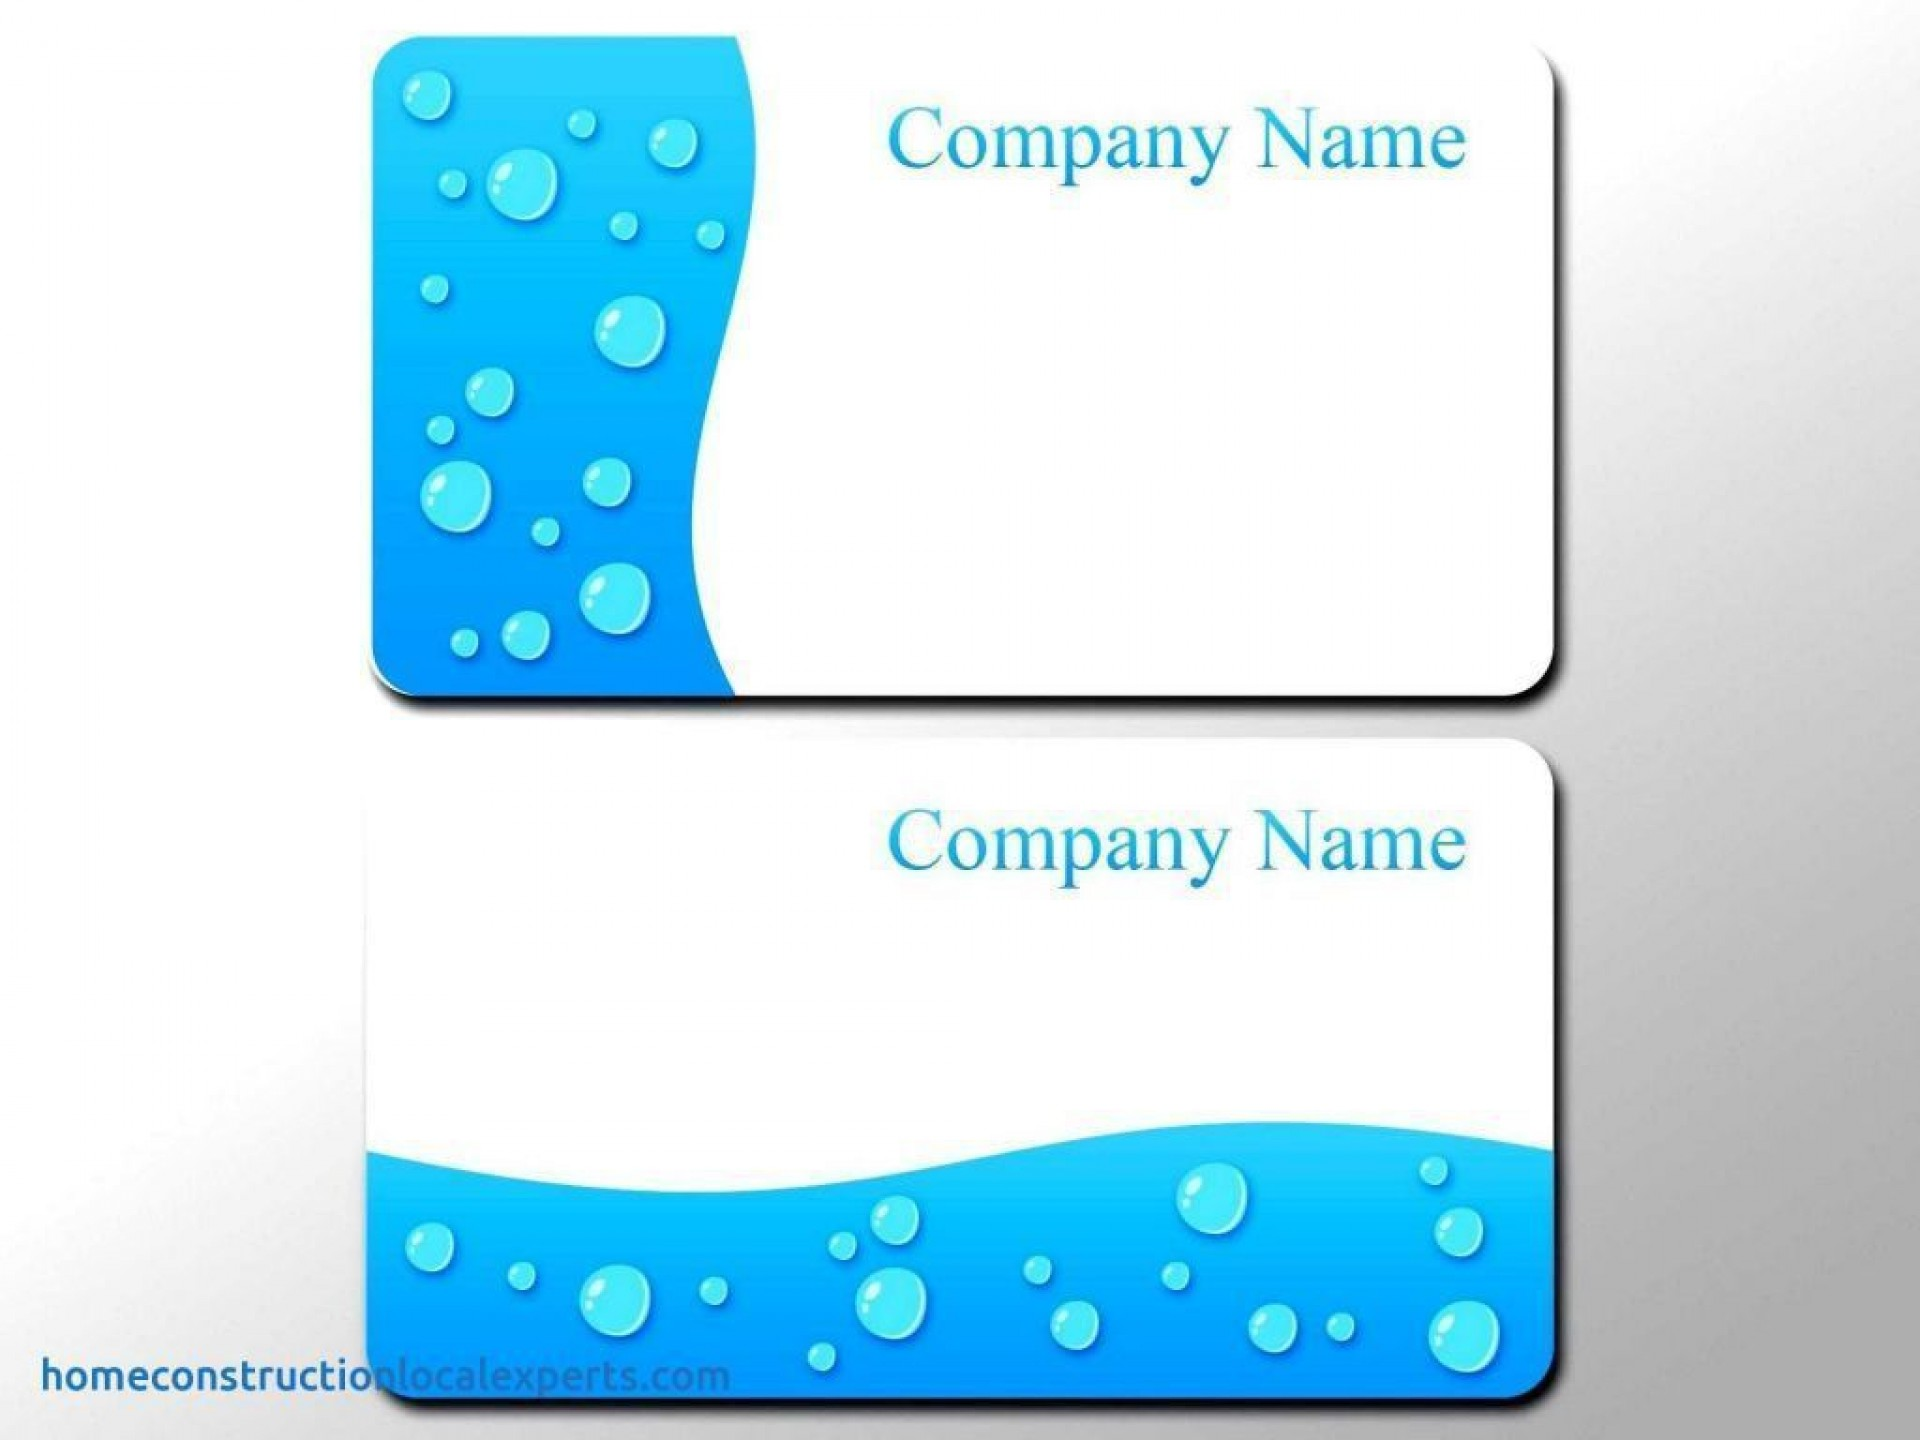 002 Fearsome Free Blank Busines Card Template Photoshop High Definition  Download Psd1920